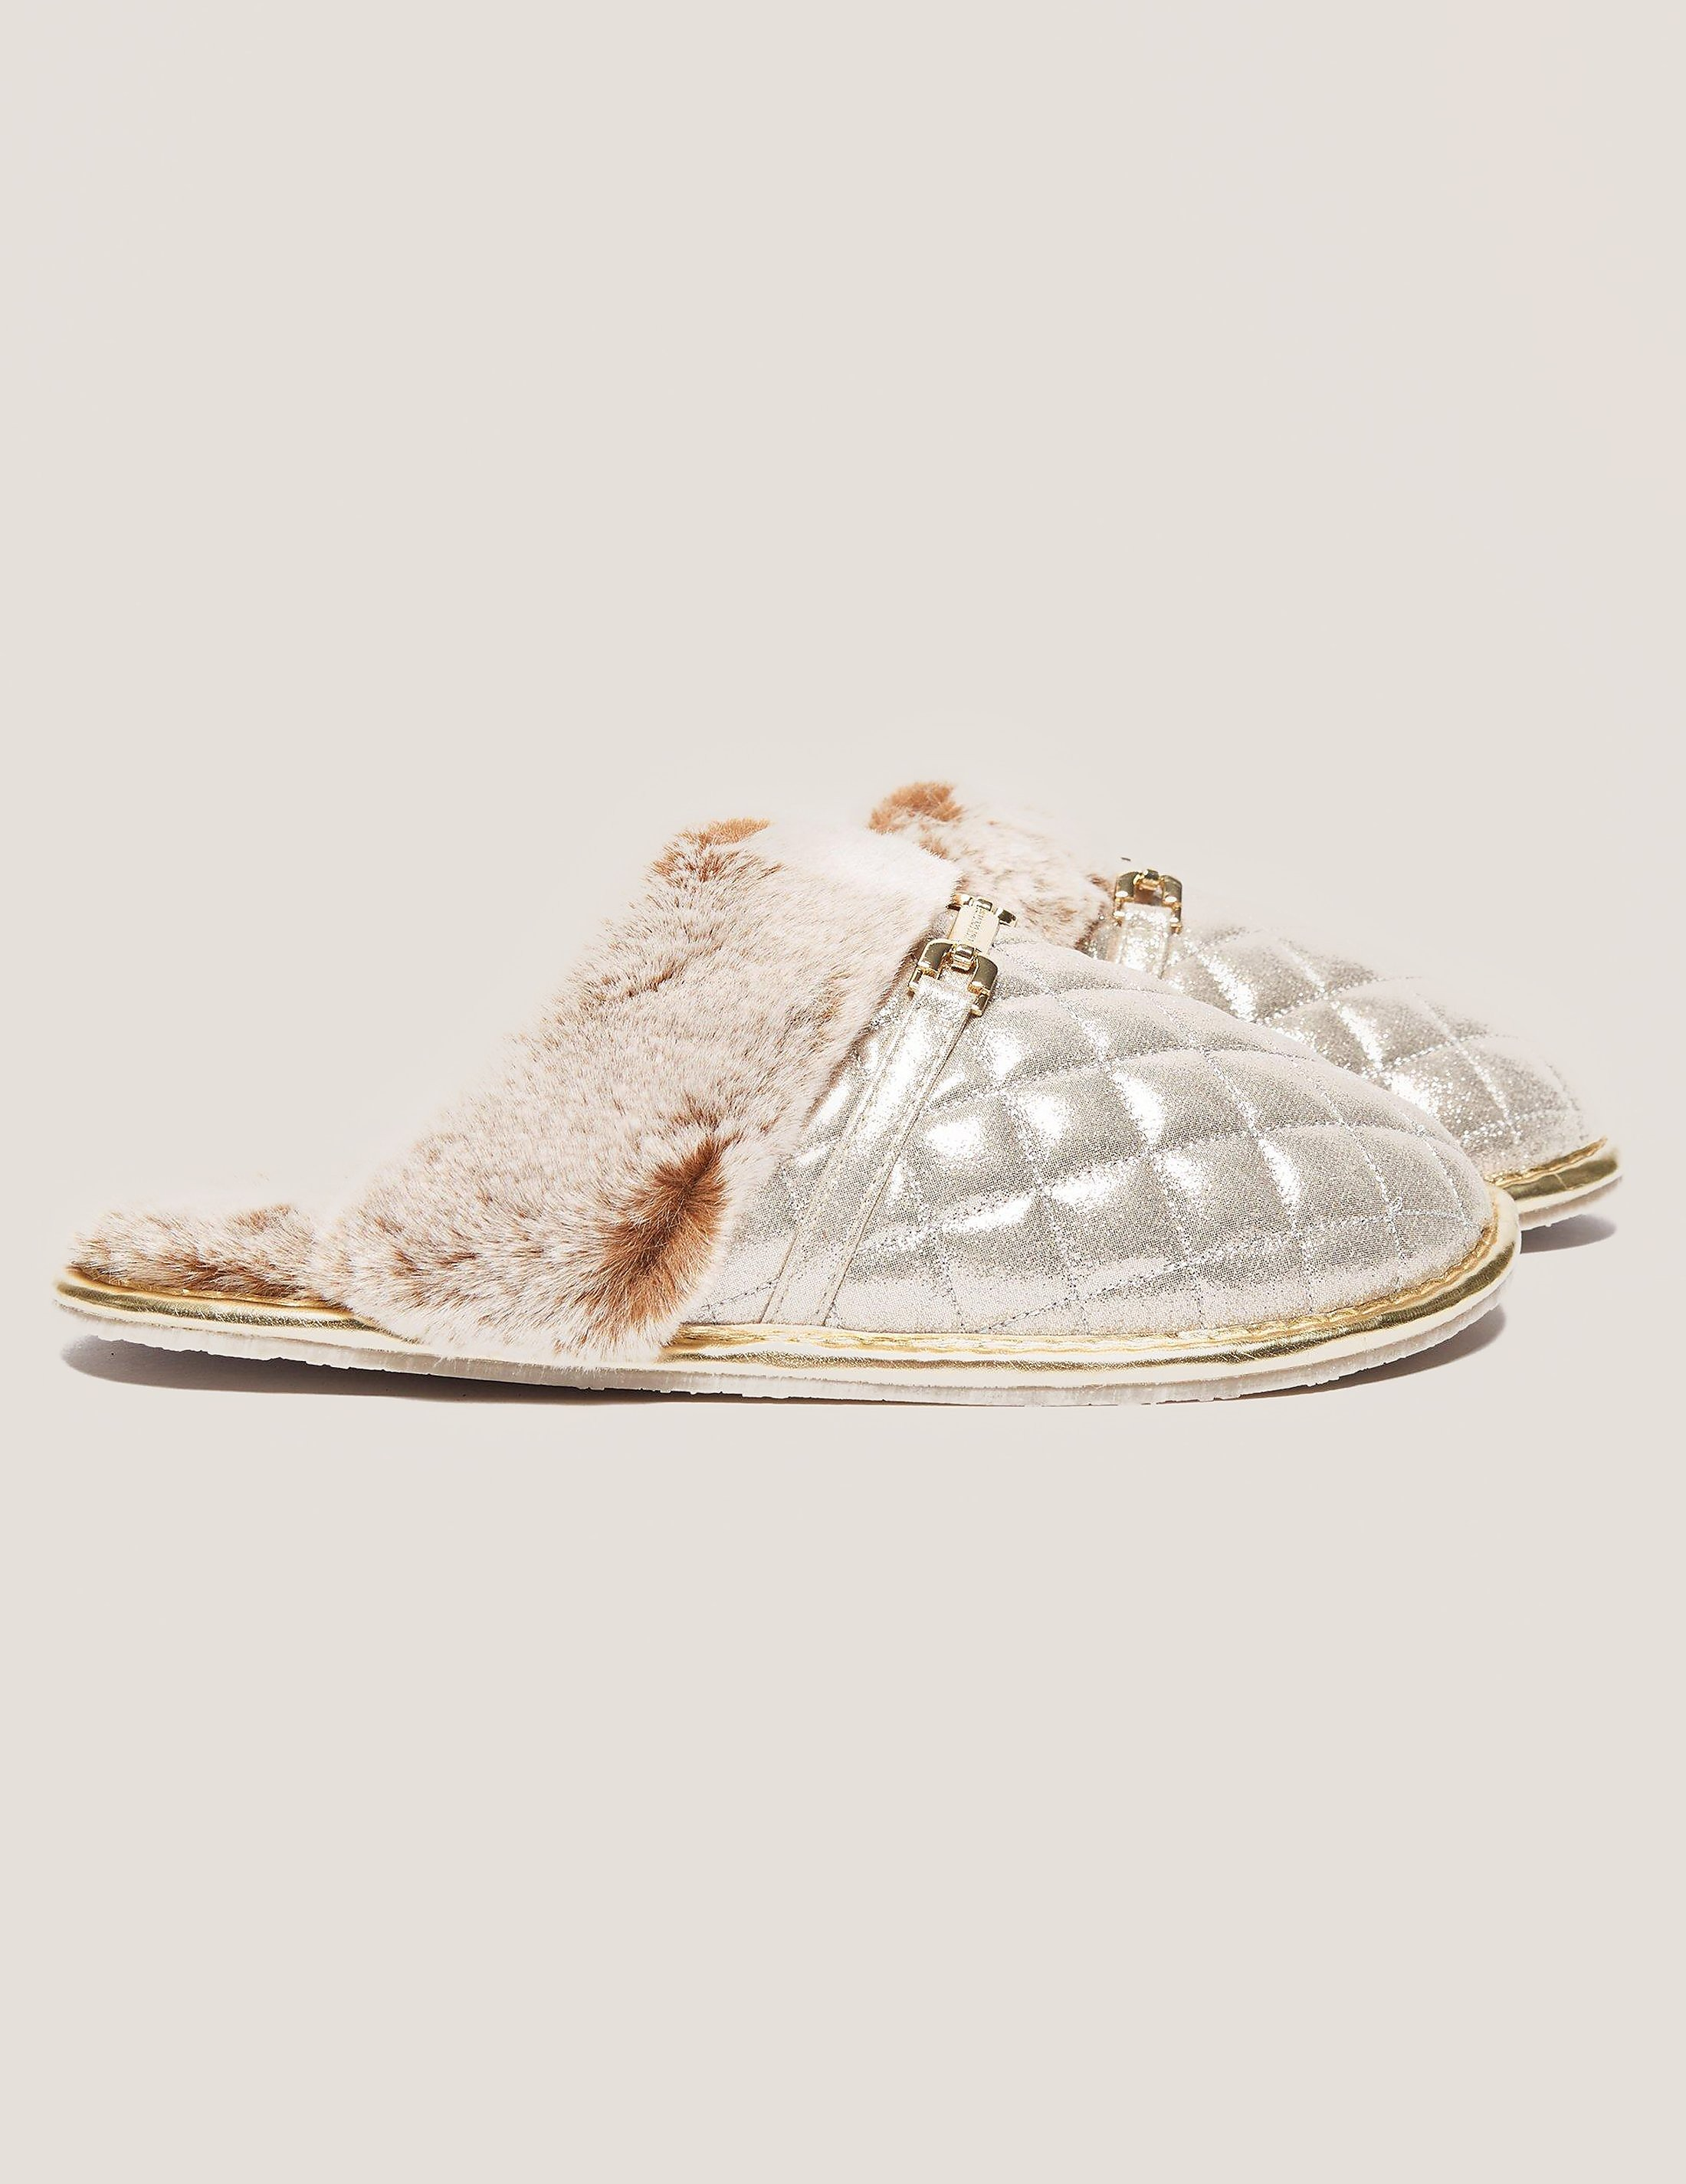 Juicy Couture Cozep Slippers